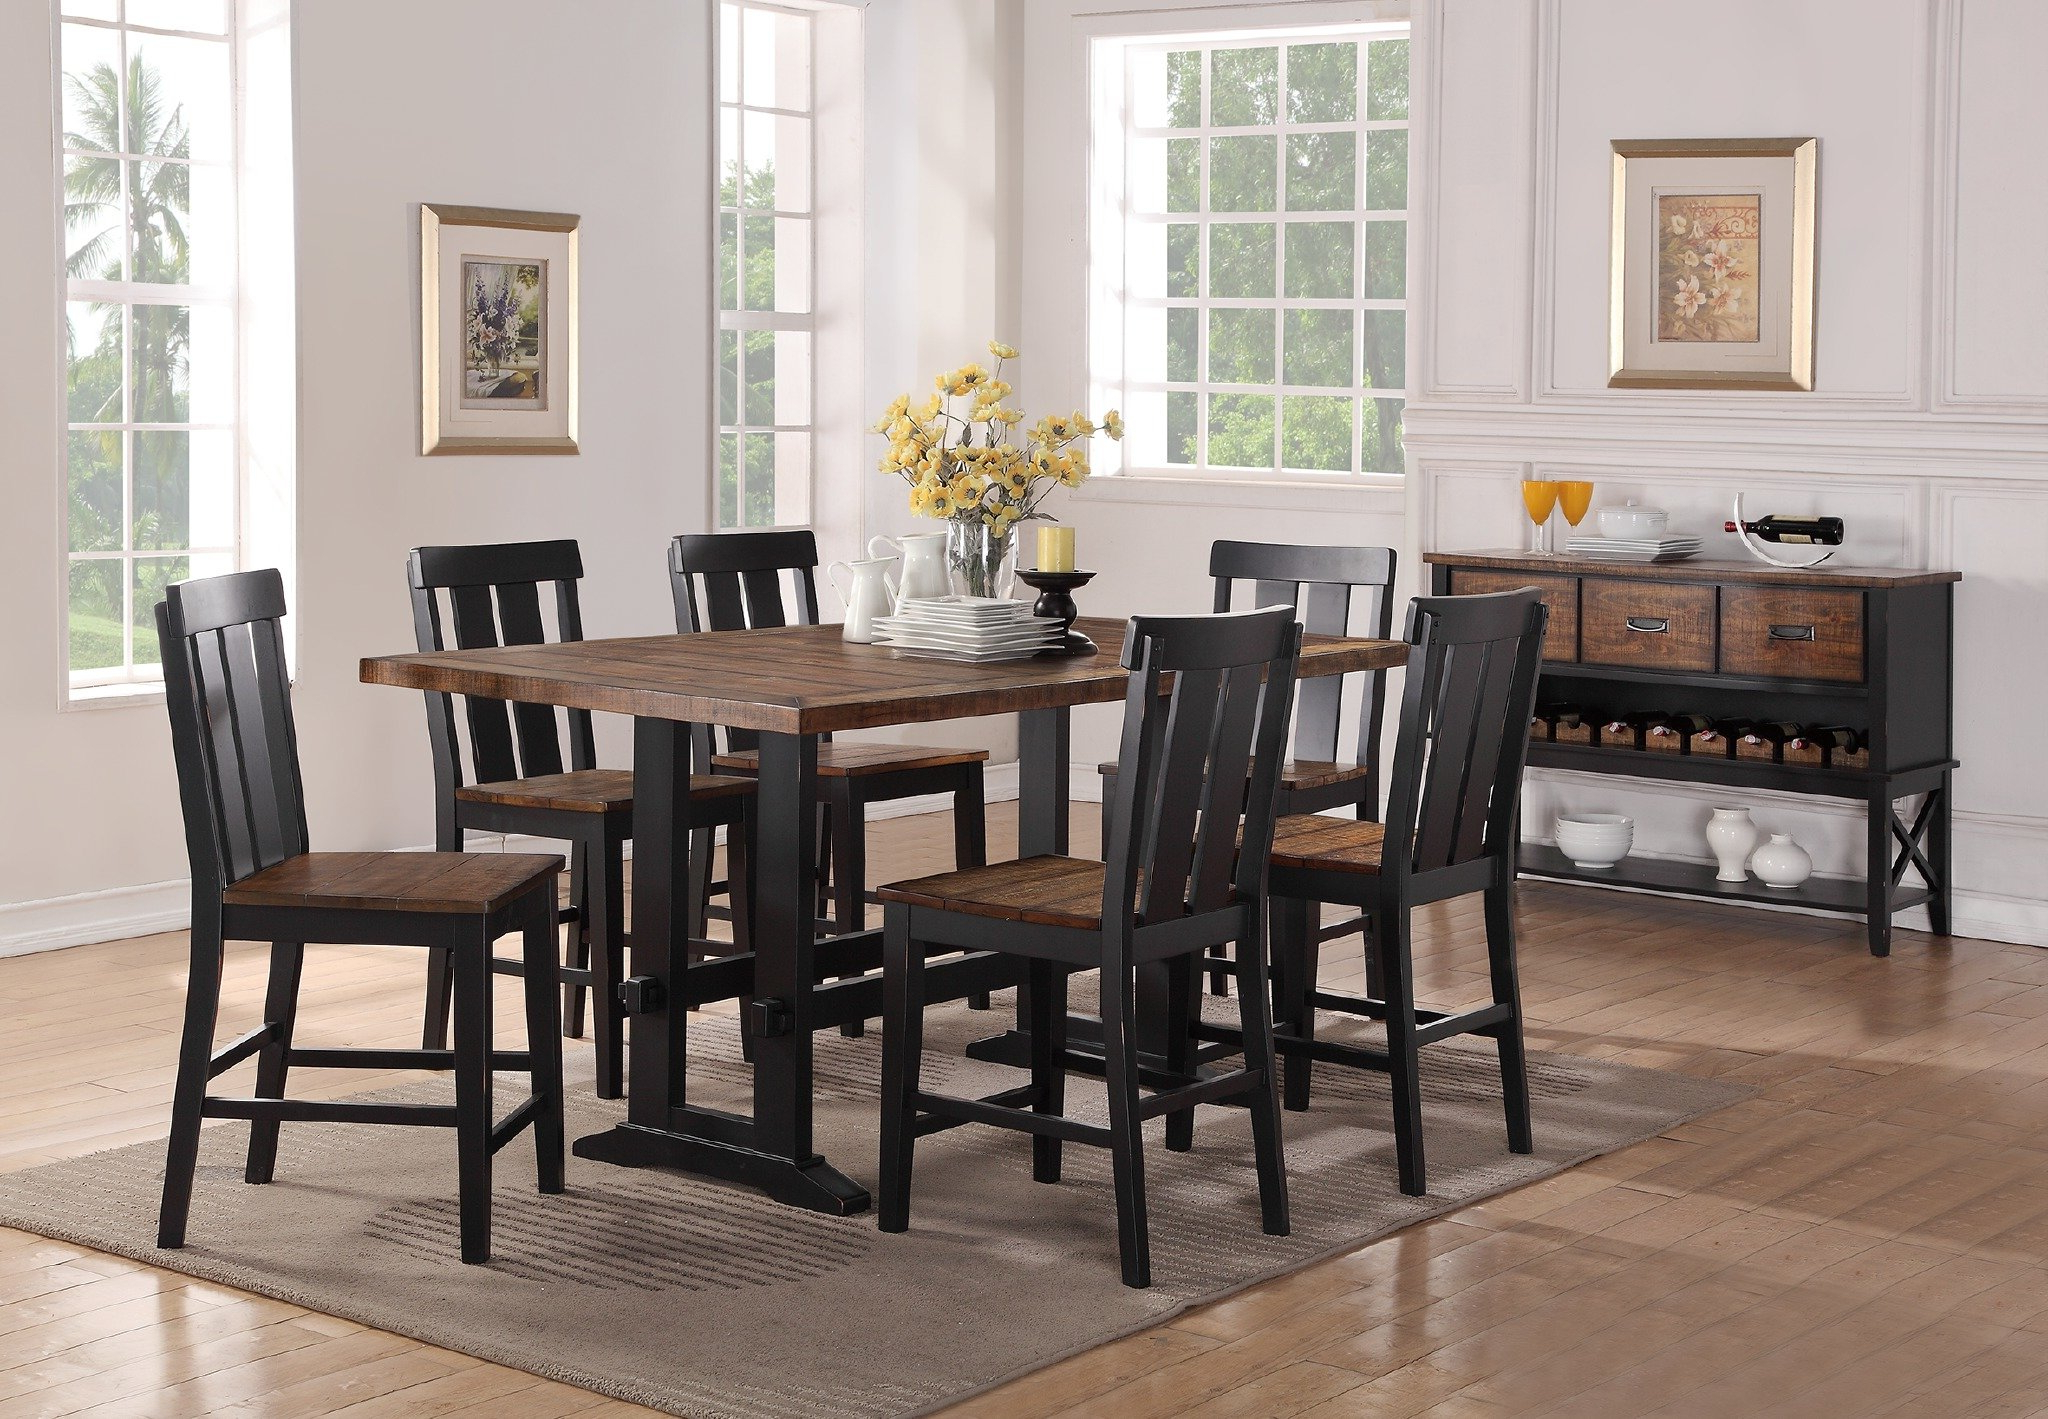 Goodman 5 Piece Solid Wood Dining Sets (Set Of 5) Throughout Well Known Gracie Oaks Goodman 7 Piece Counter Height Dining Set & Reviews (View 8 of 25)